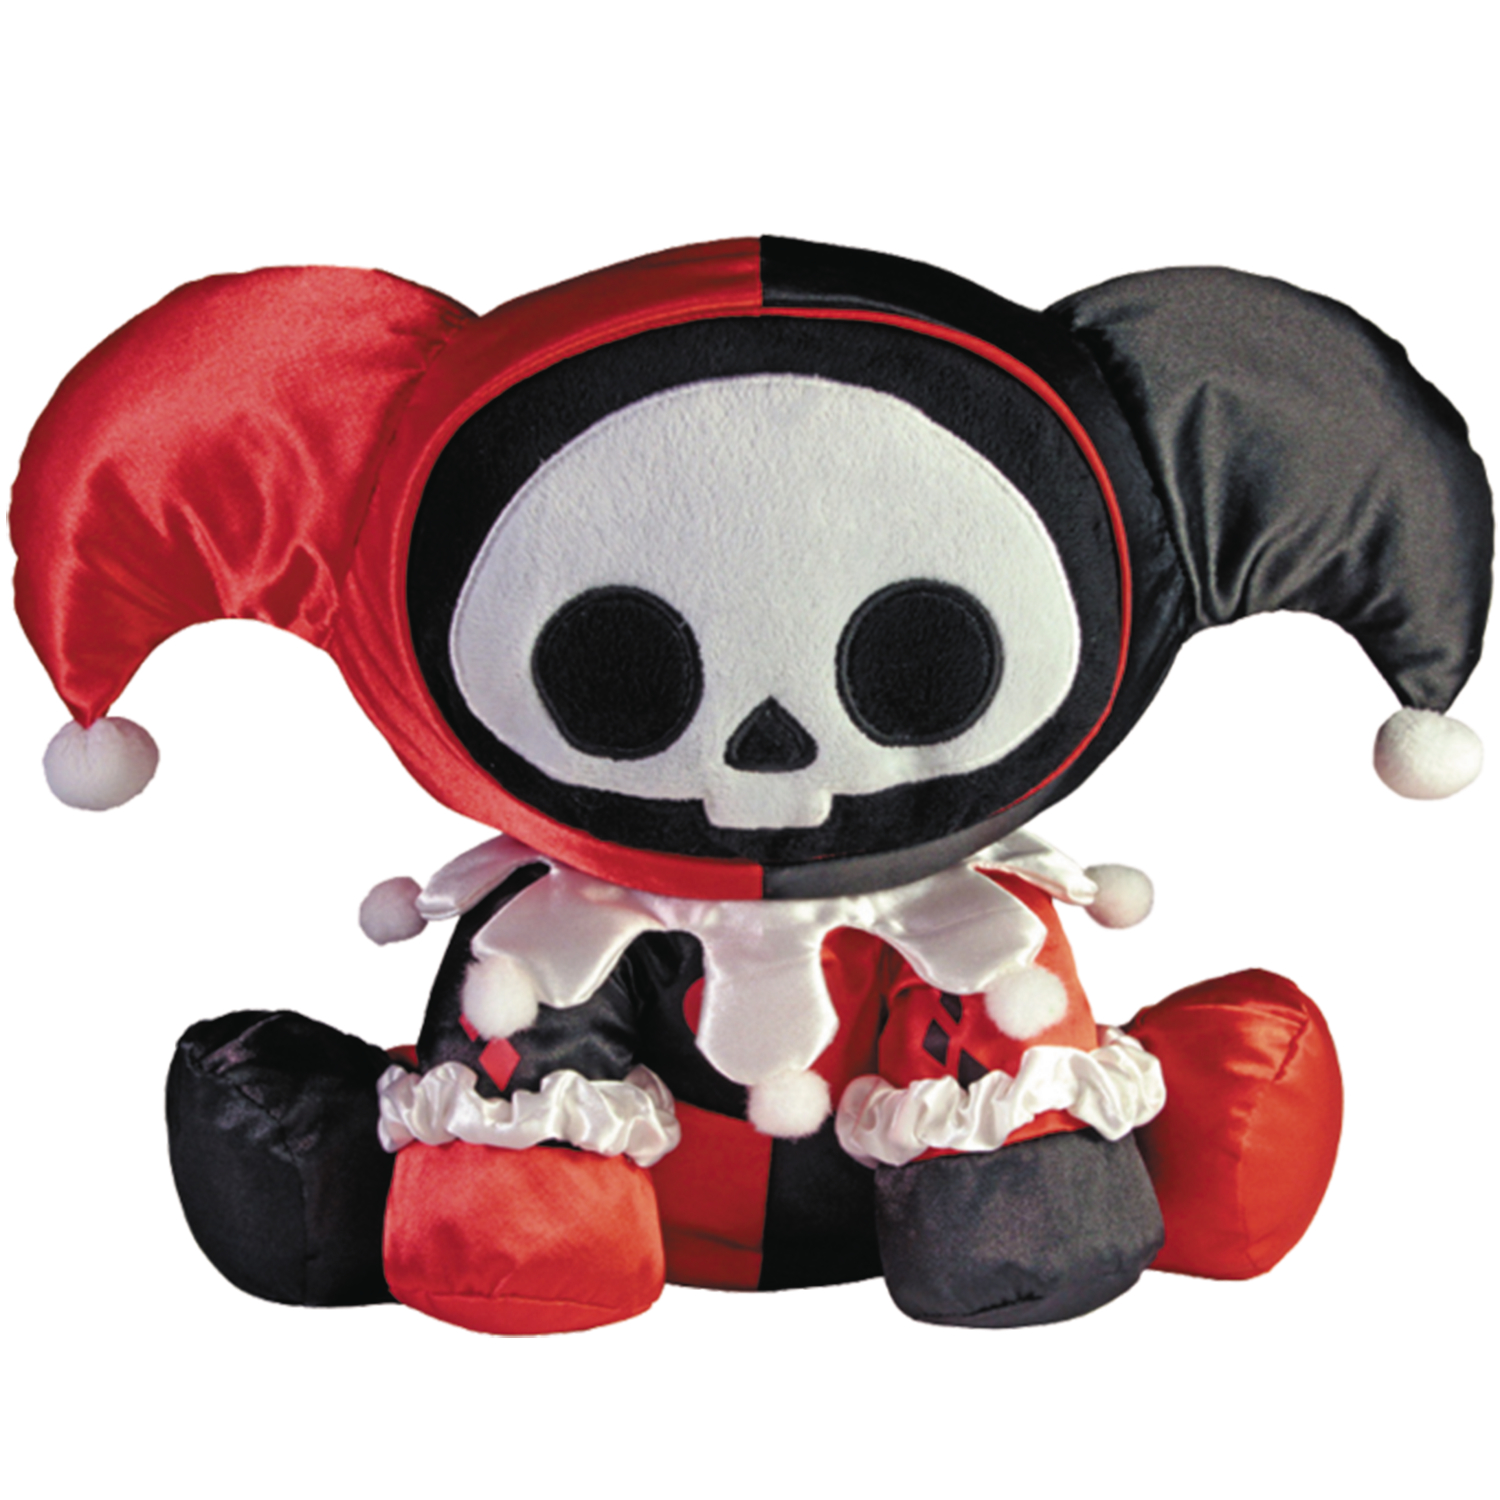 SKELANIMALS HARLEY QUINN MARCY DLX PLUSH